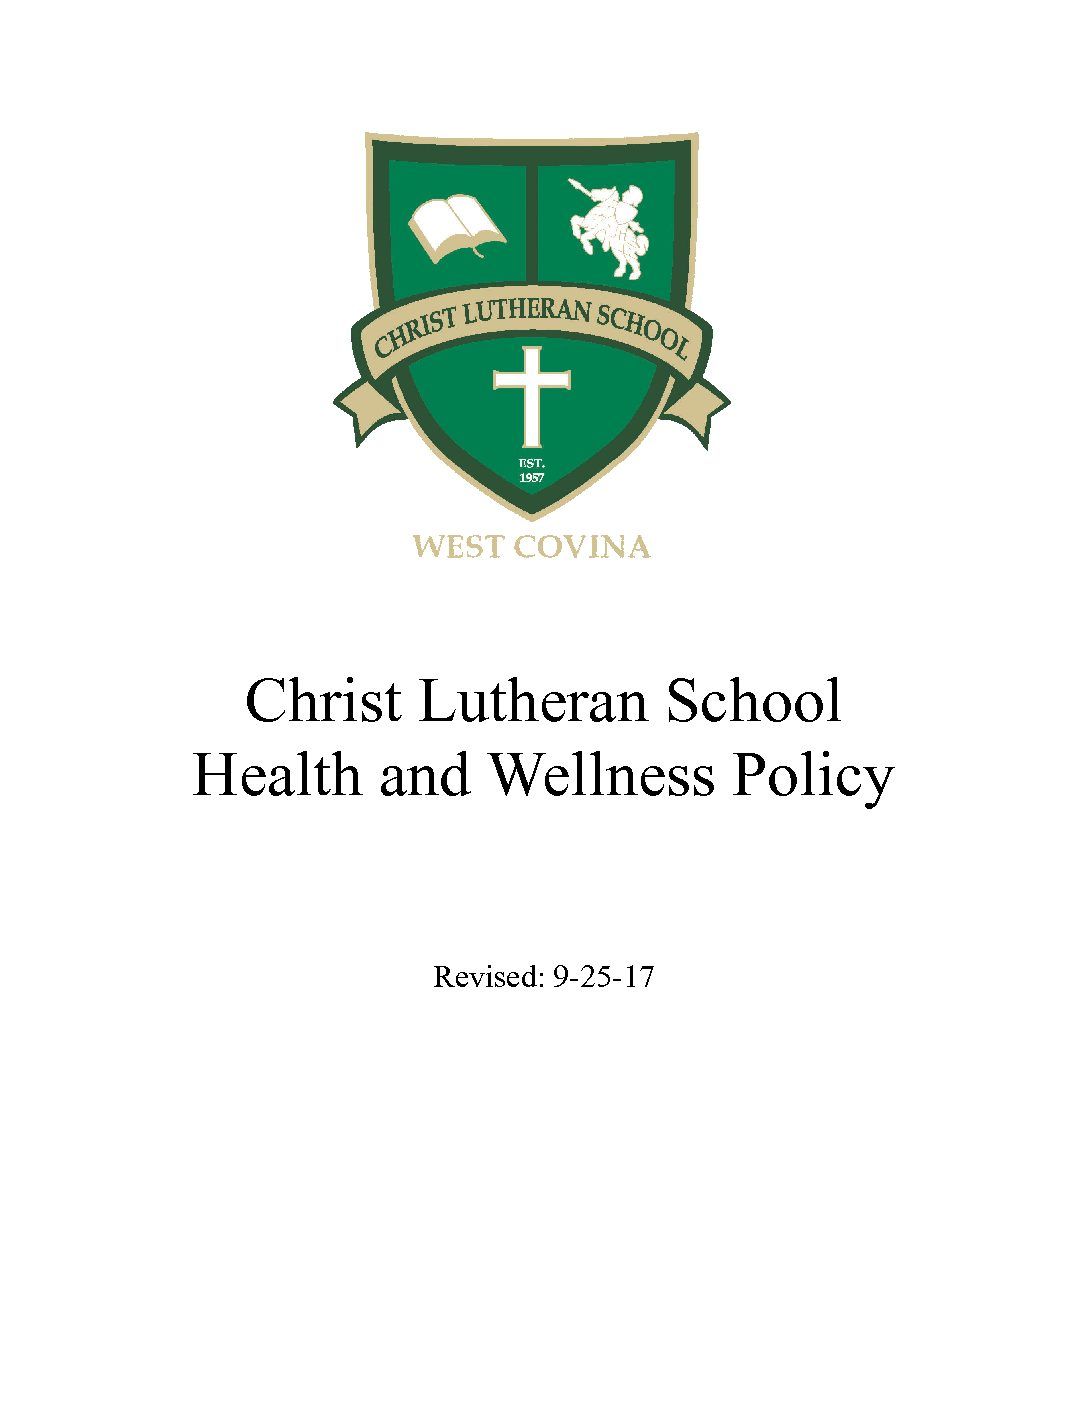 cls-health-and-wellness-policy-adopted-2017